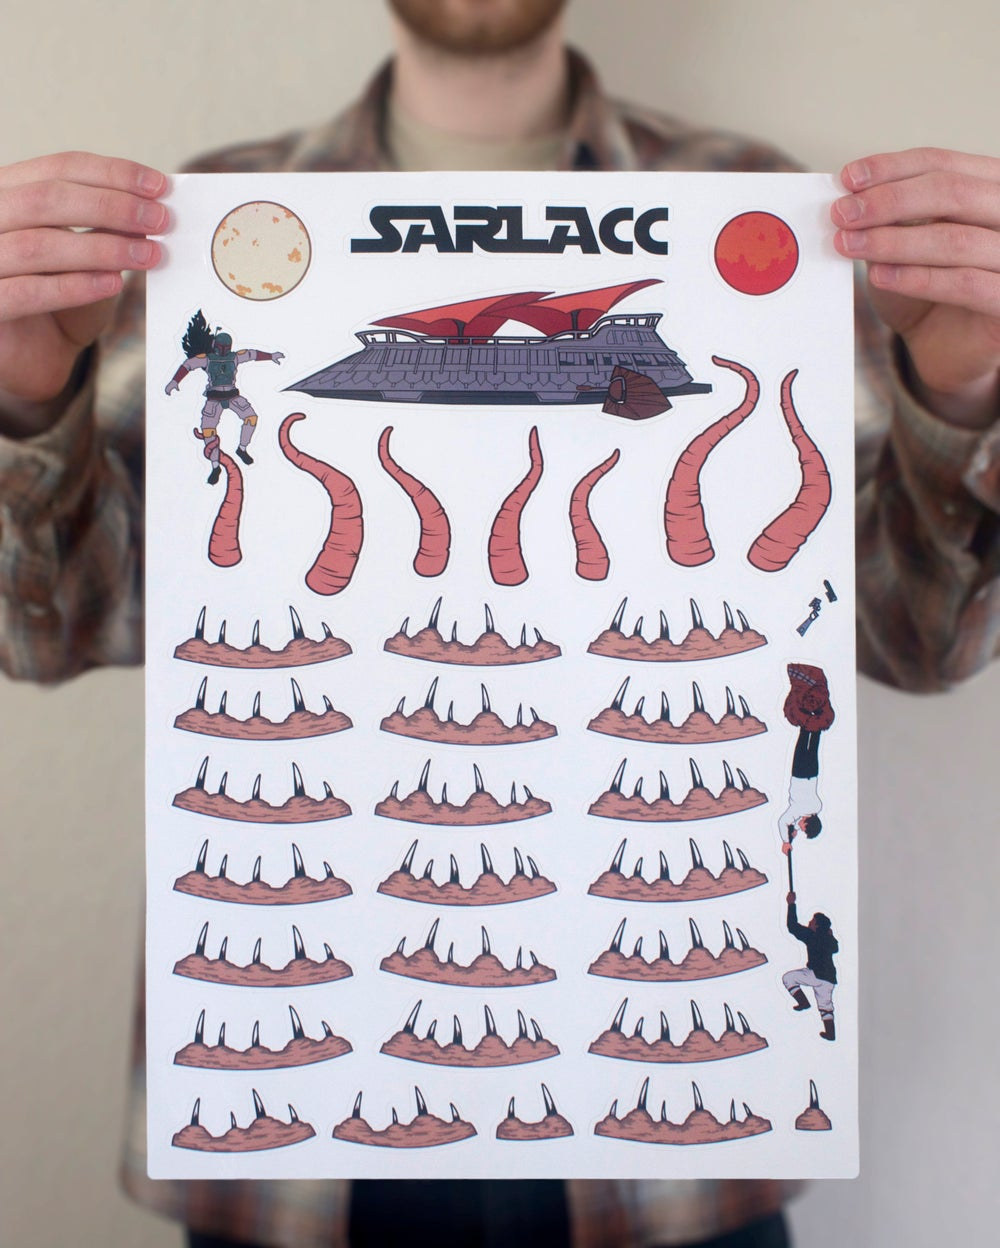 Awesome Decals Turn Your Toilet Bowl Into a Deadly Sarlacc Pit